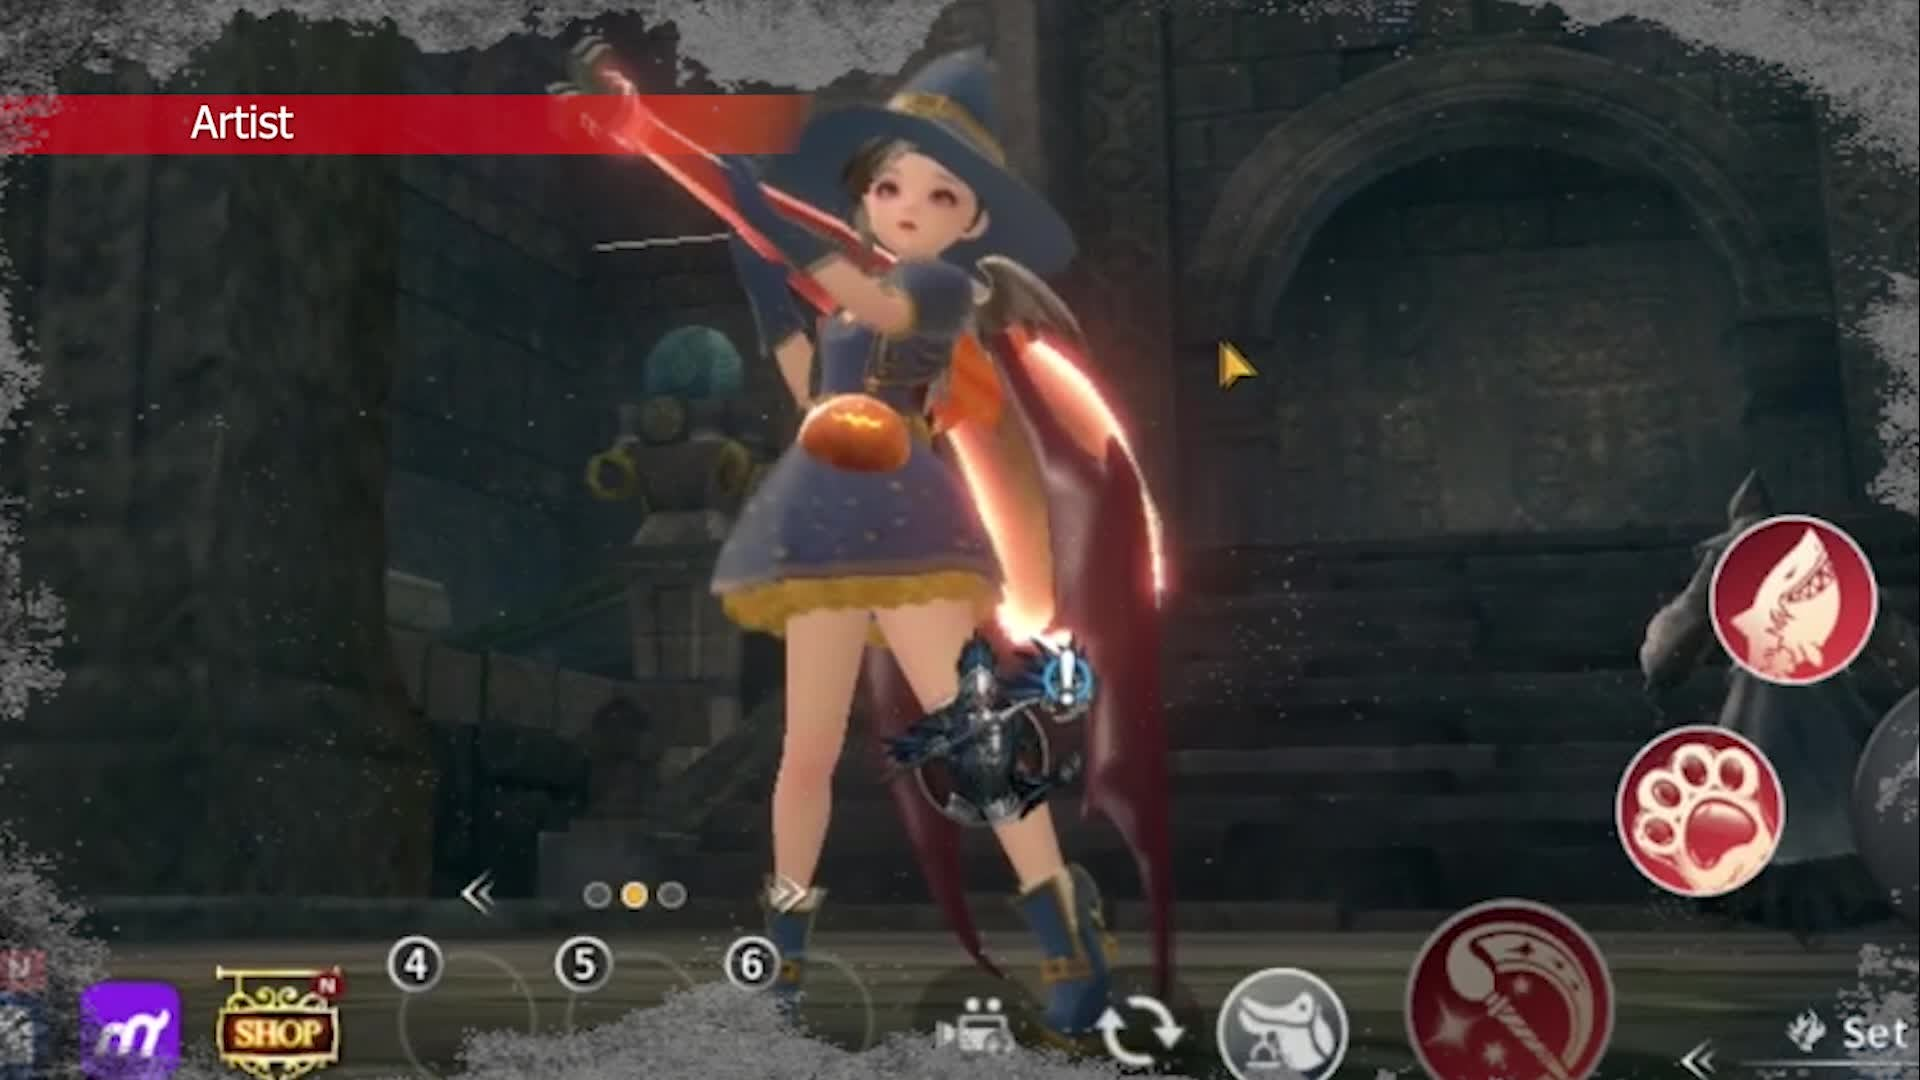 Icarus M: Riders of Icarus: Notice - Trailer: Icarus M Halloween Costumes video cover image 1